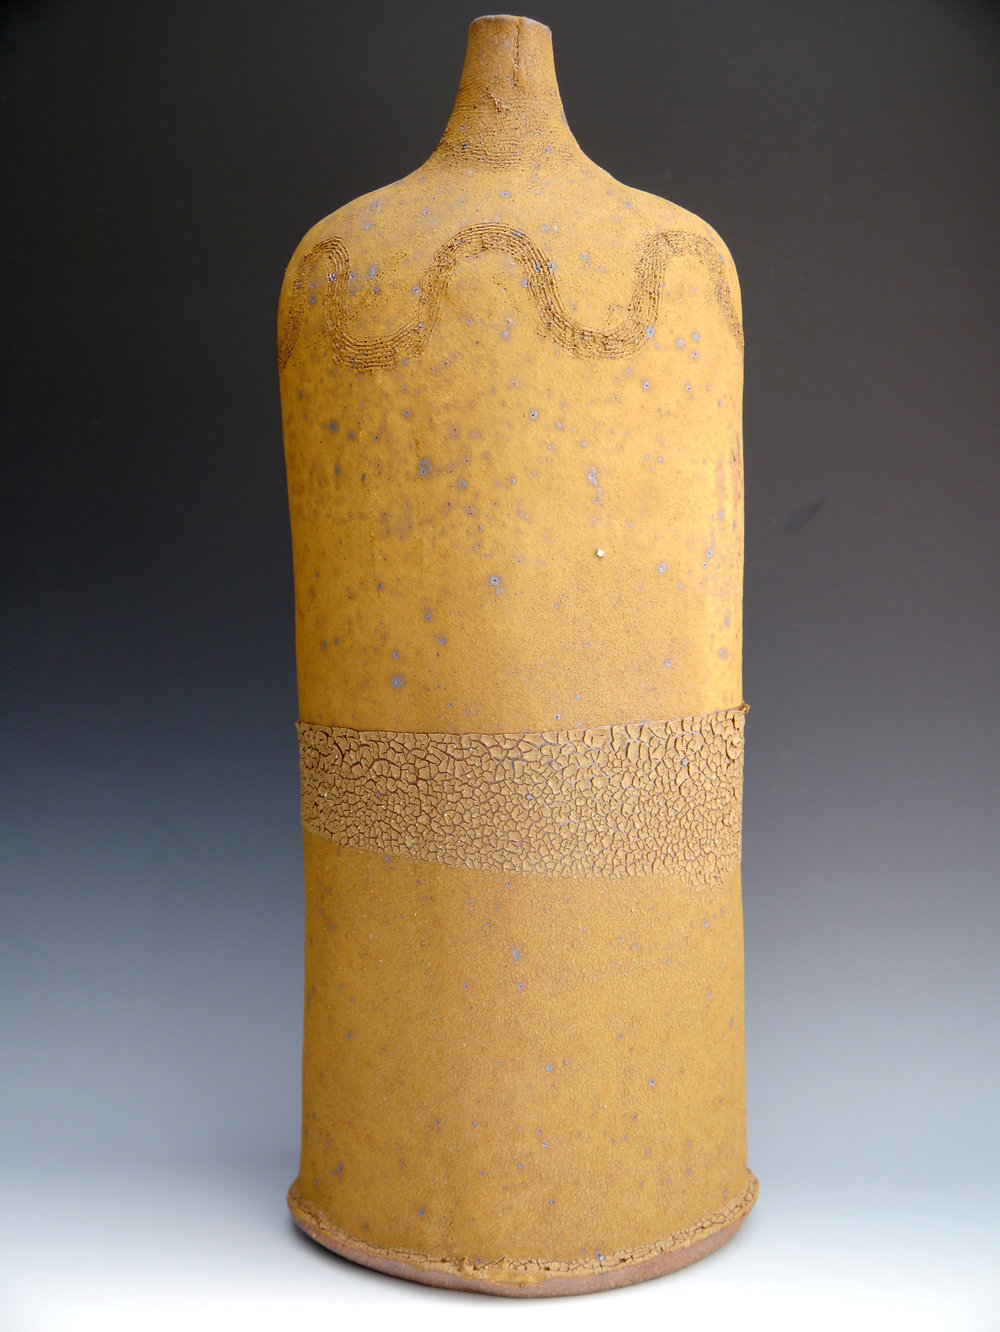 04 1st September 2014 tall scored rust accretion bottle 56 x 23 cm.jpg